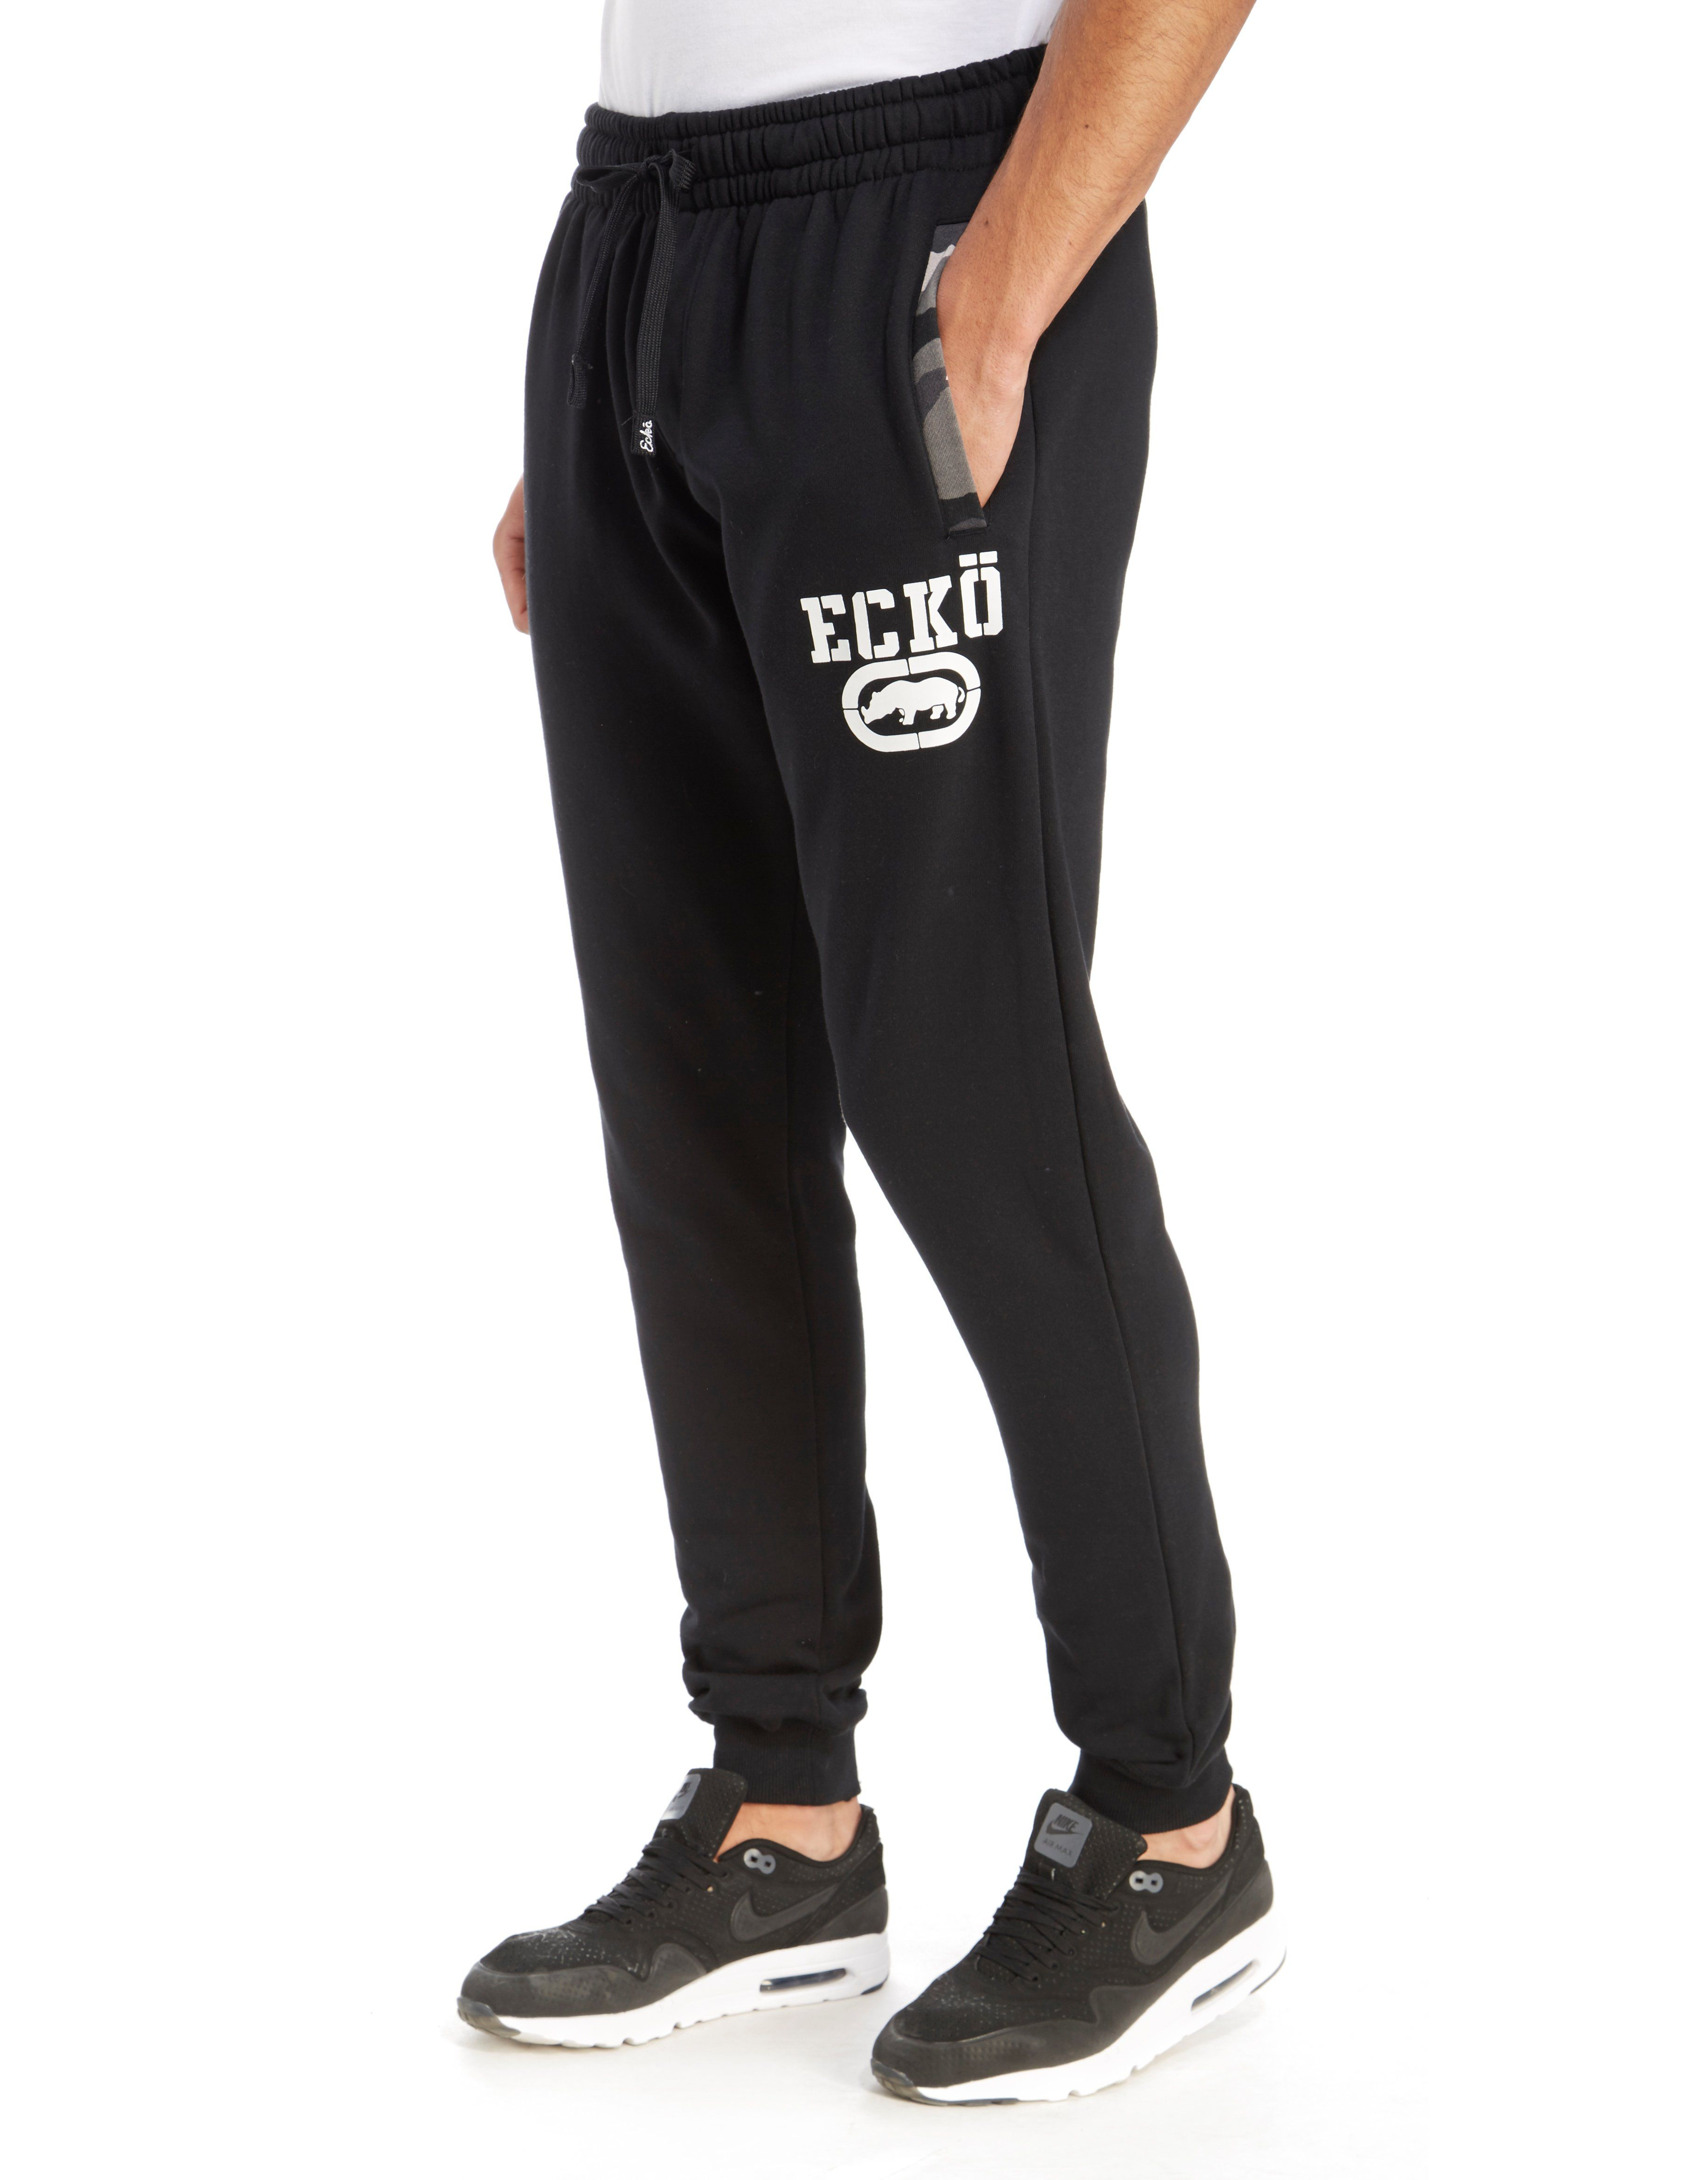 Ecko General Camo Trim Jogging Pants